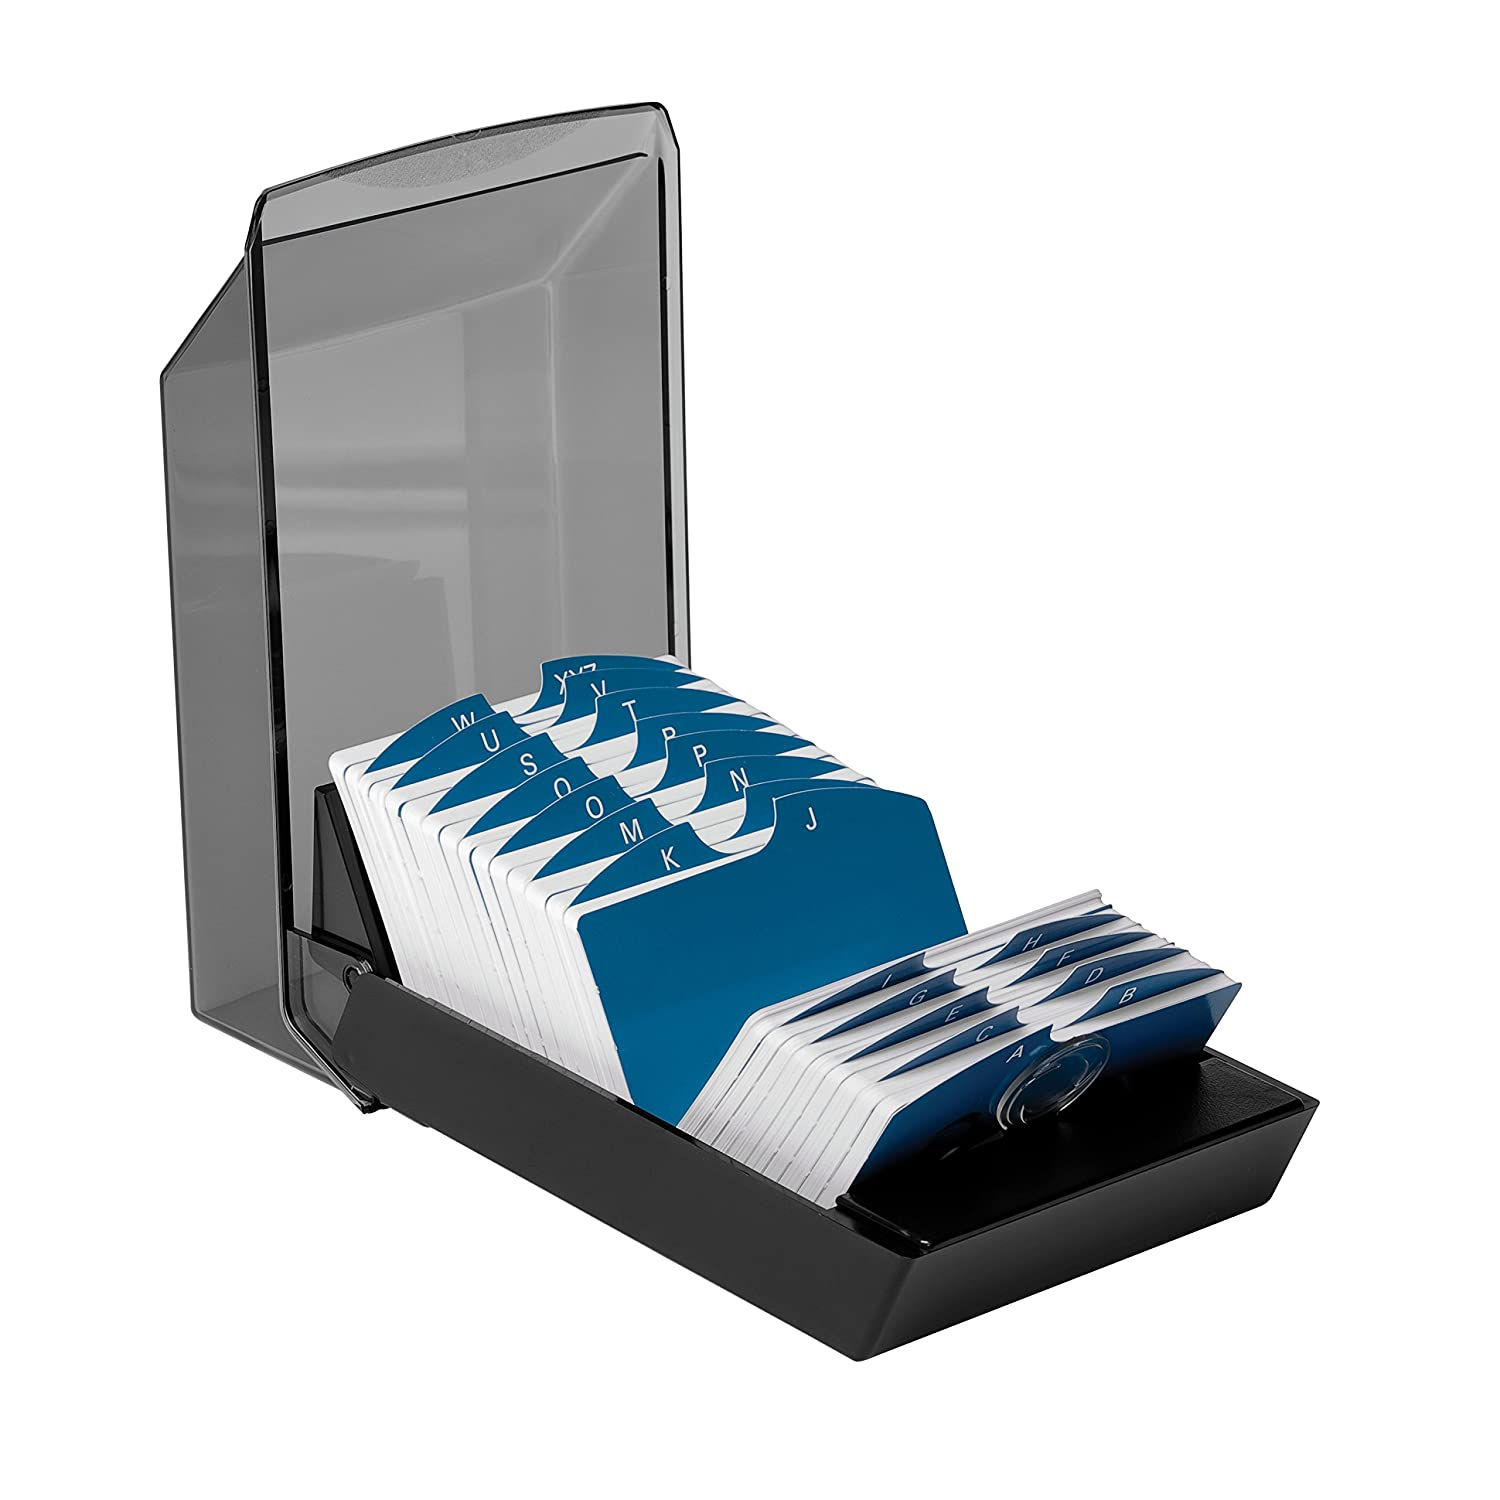 Amazon.com : Rolodex 67011 Rolodex Covered Business Card File, 500 ...